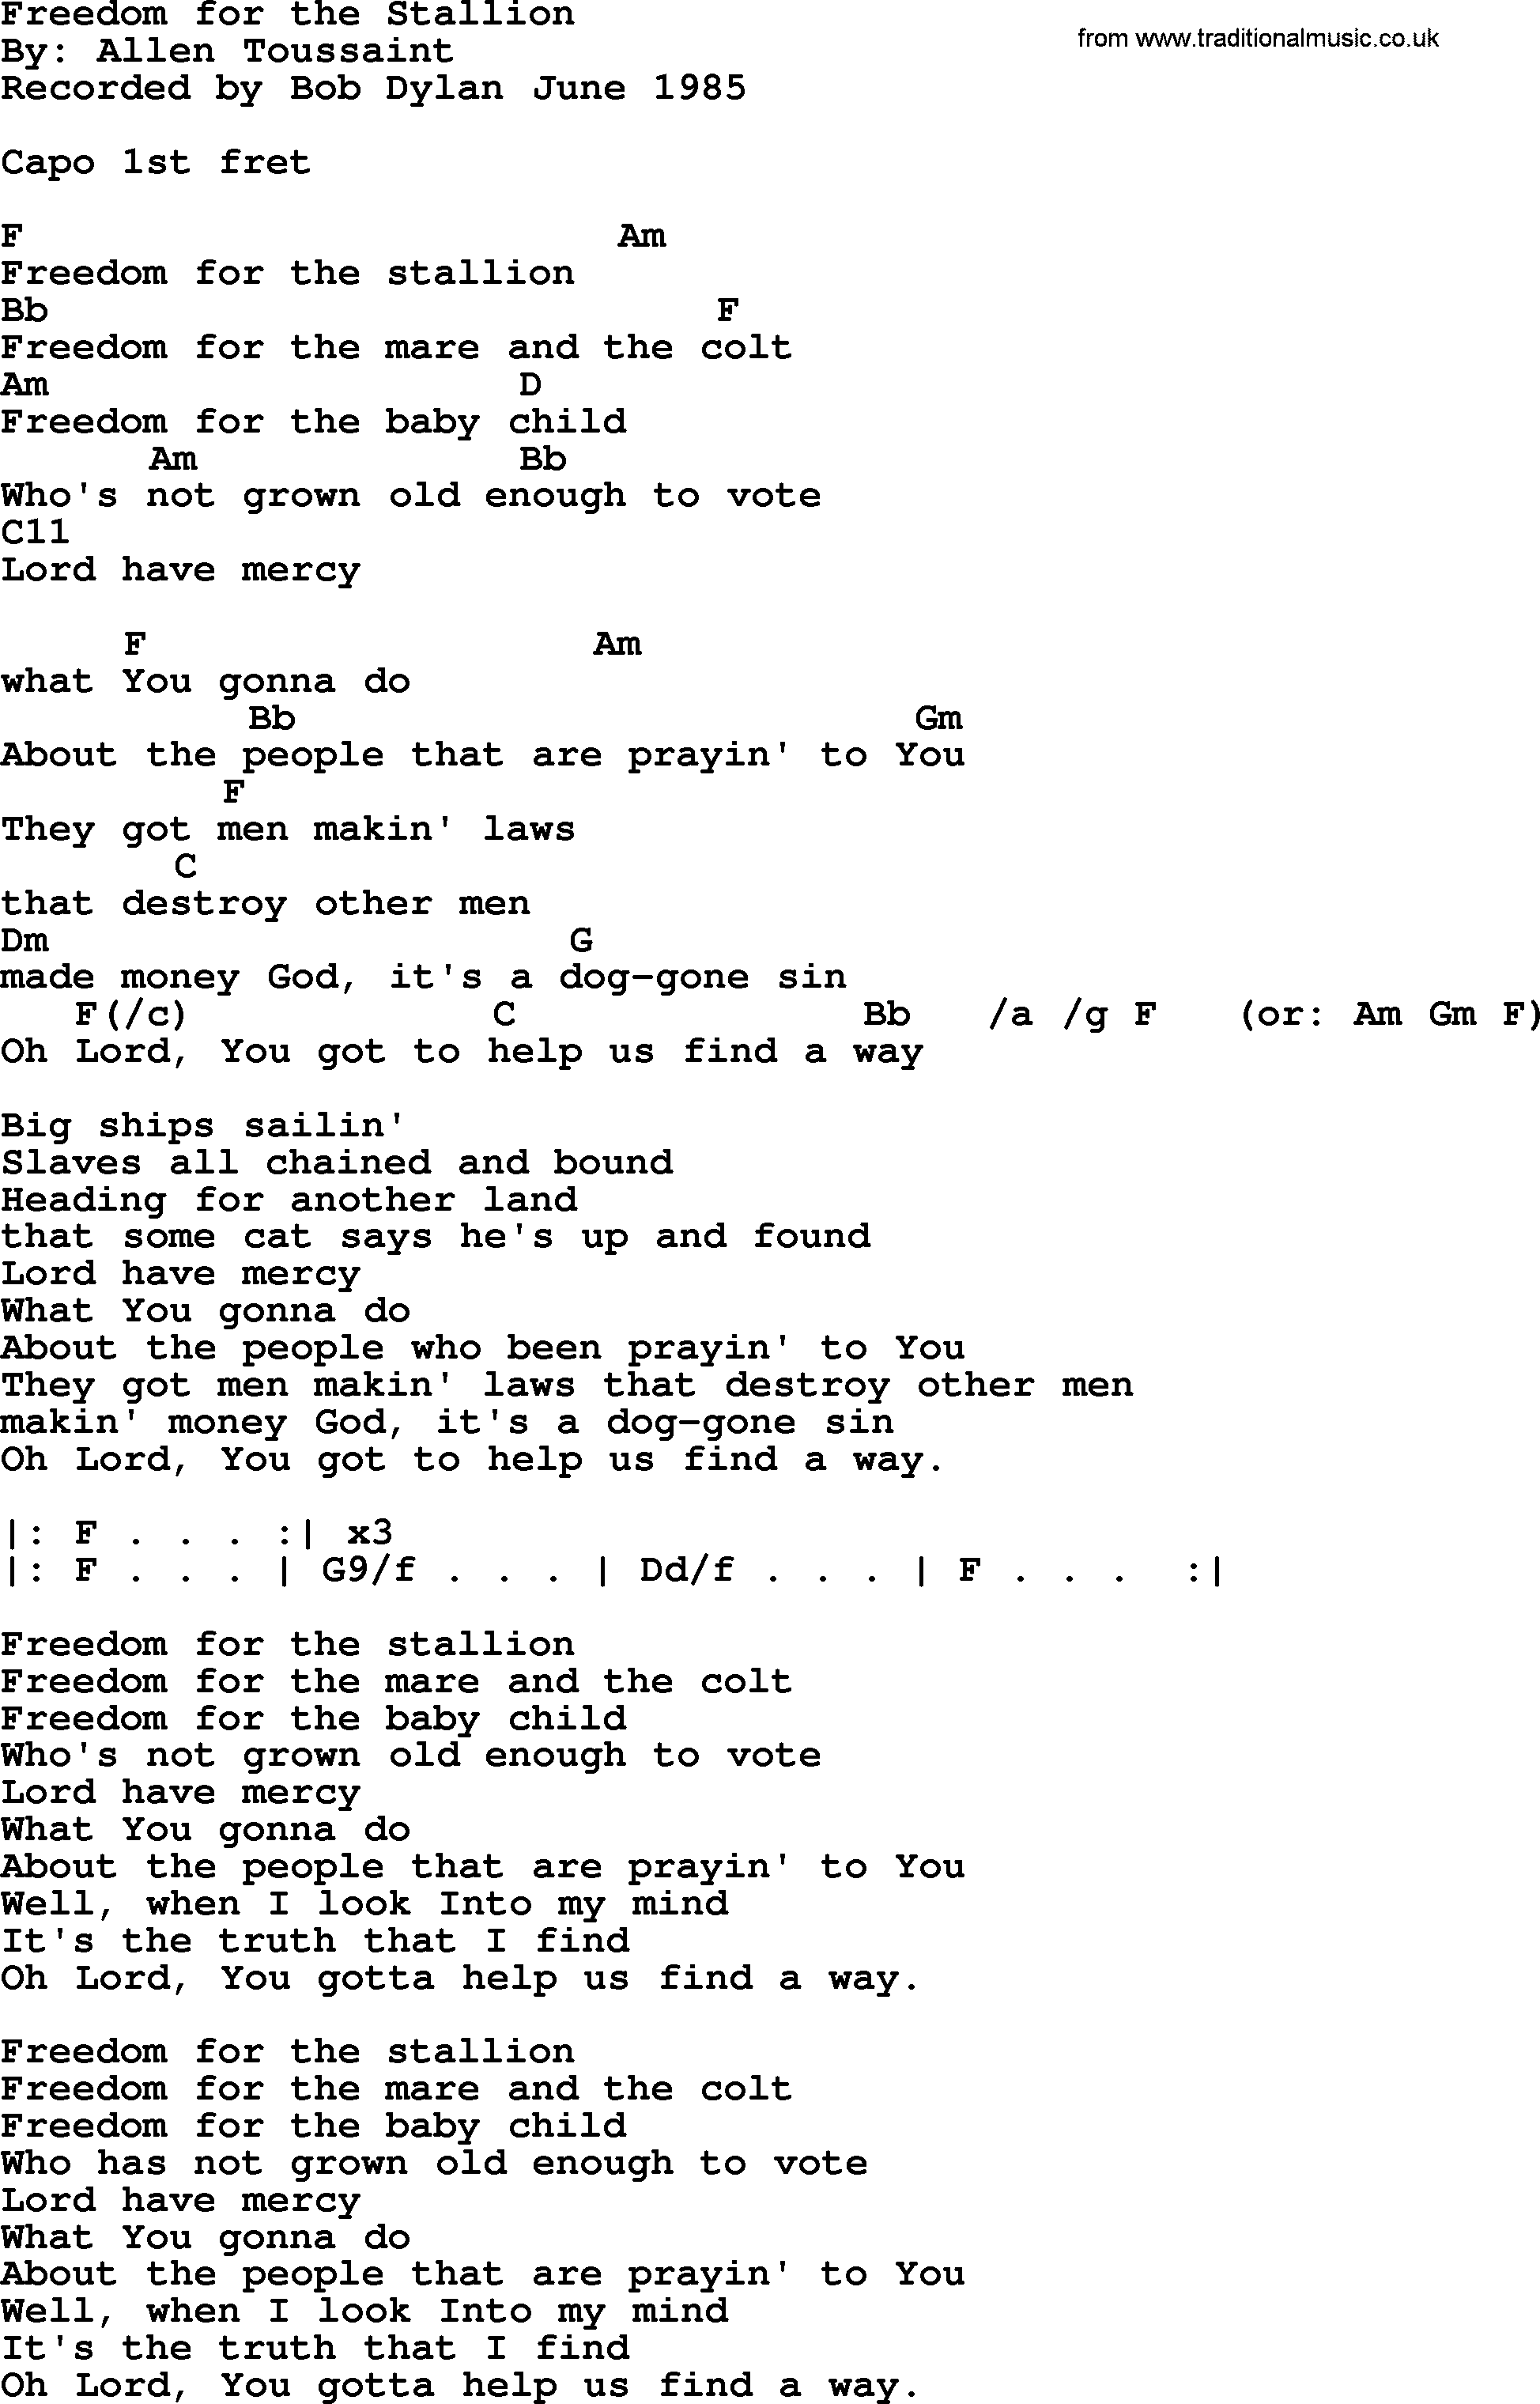 Bob Dylan song - Freedom for the Stallion, lyrics and chords